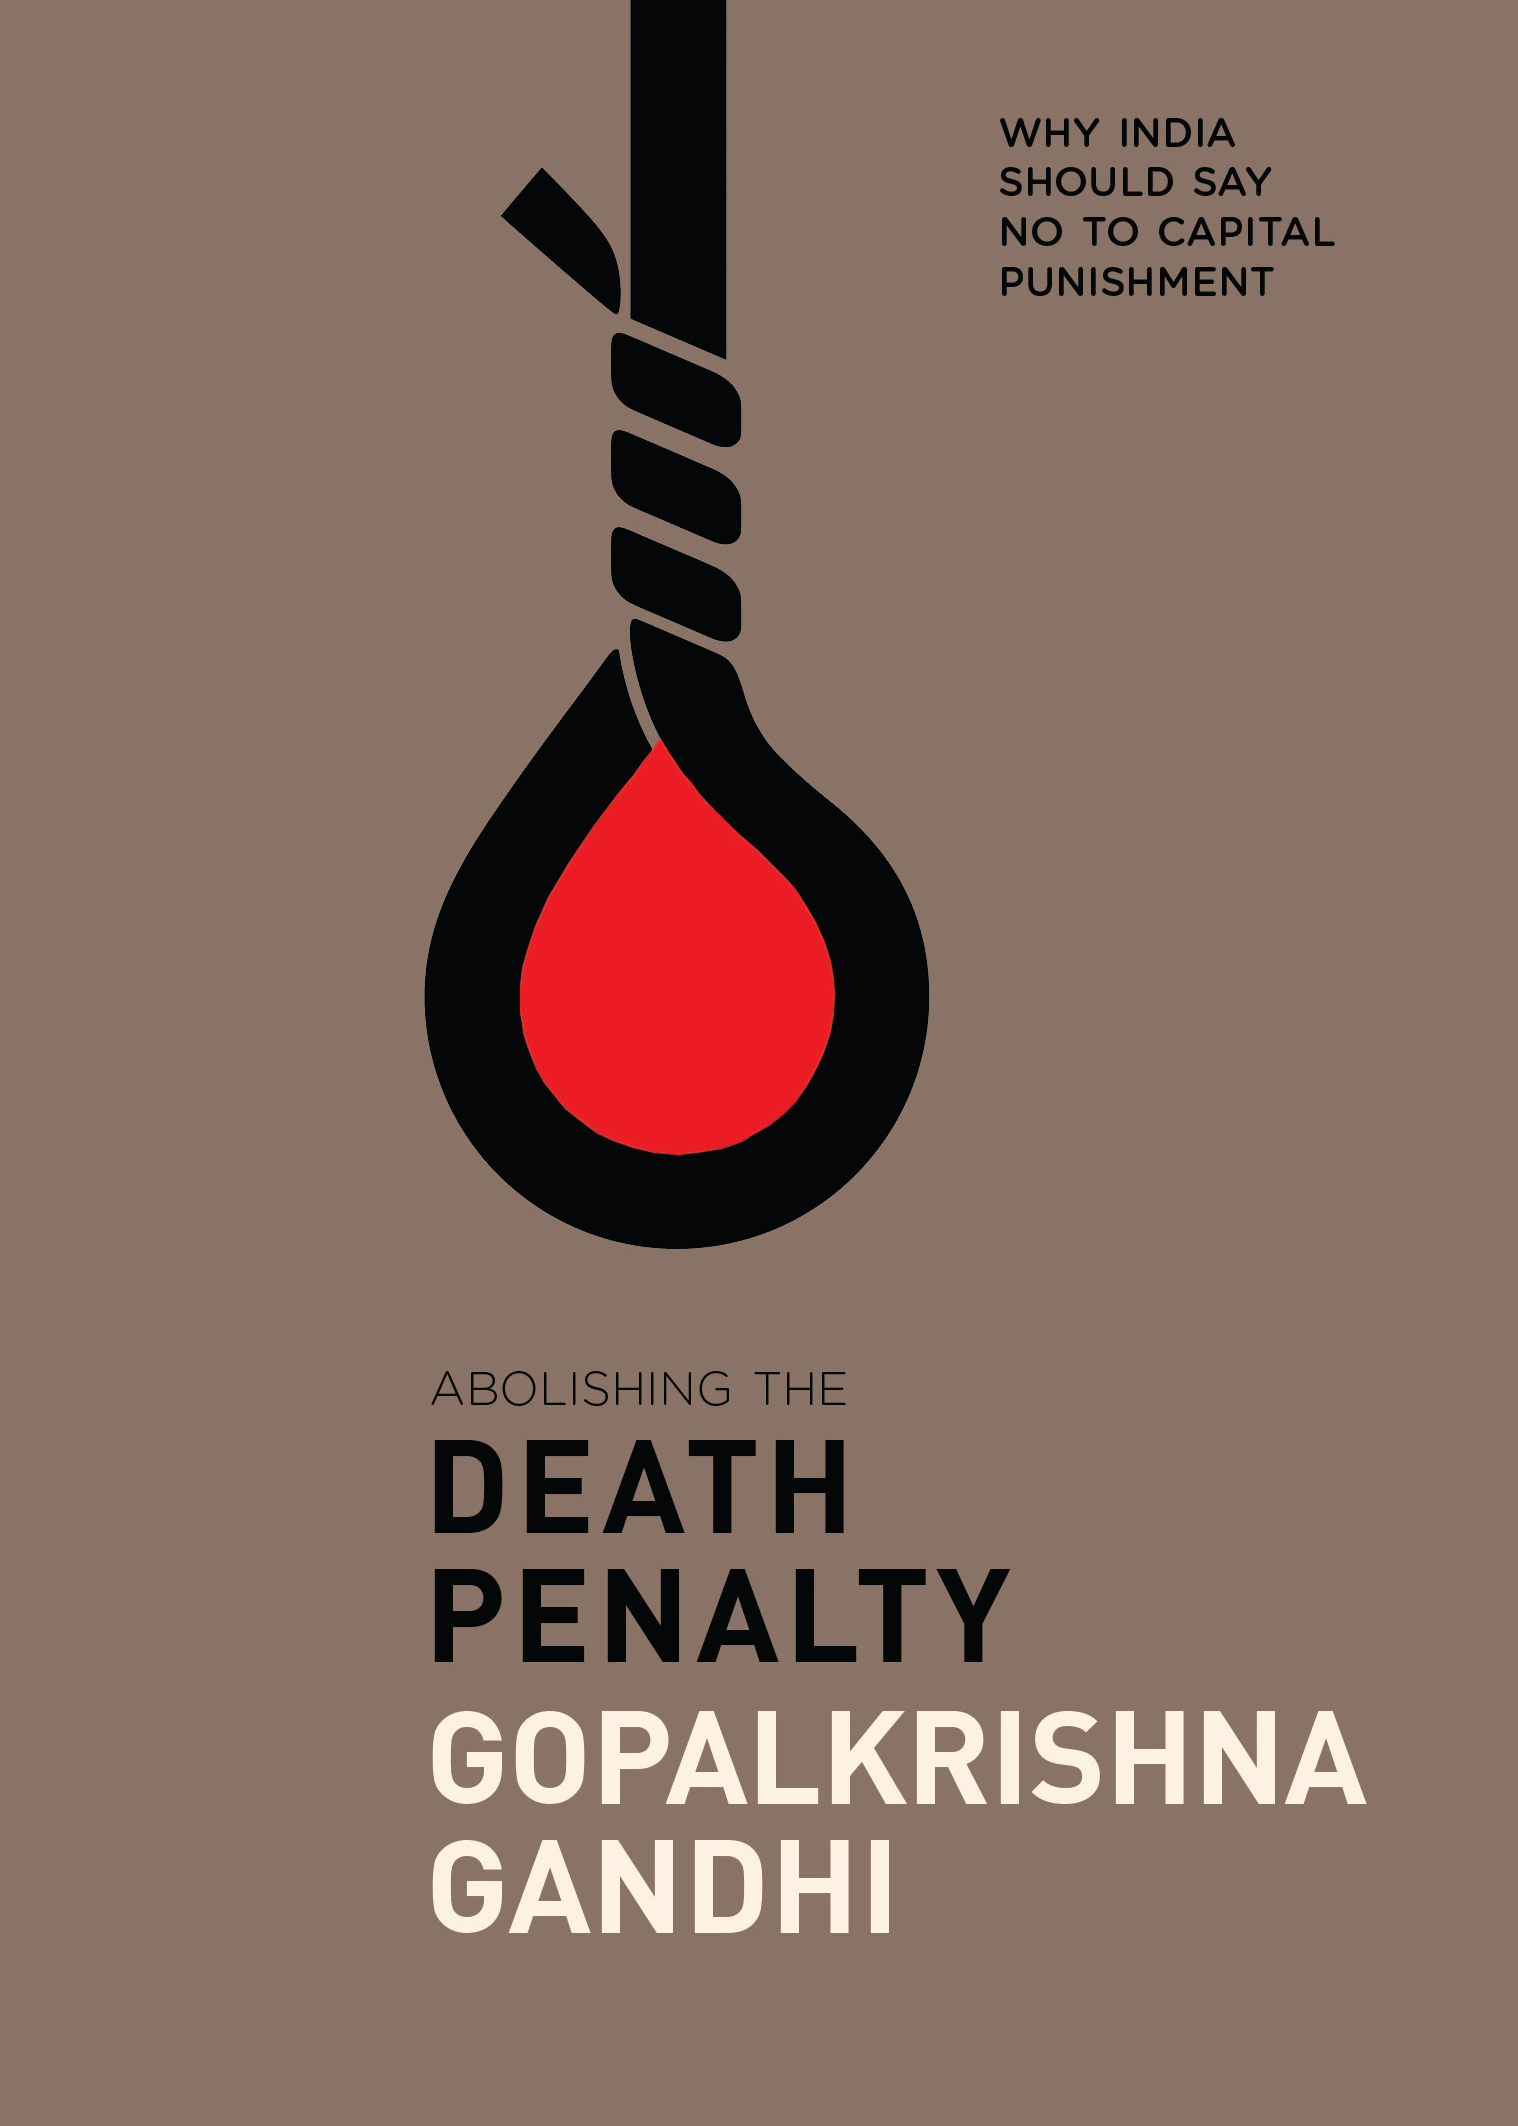 why one person alone cannot and must not confirm a death penalty excerpted permission from abolishing the death penalty why should say no to capital punishment gopalkrishna gandhi aleph book company